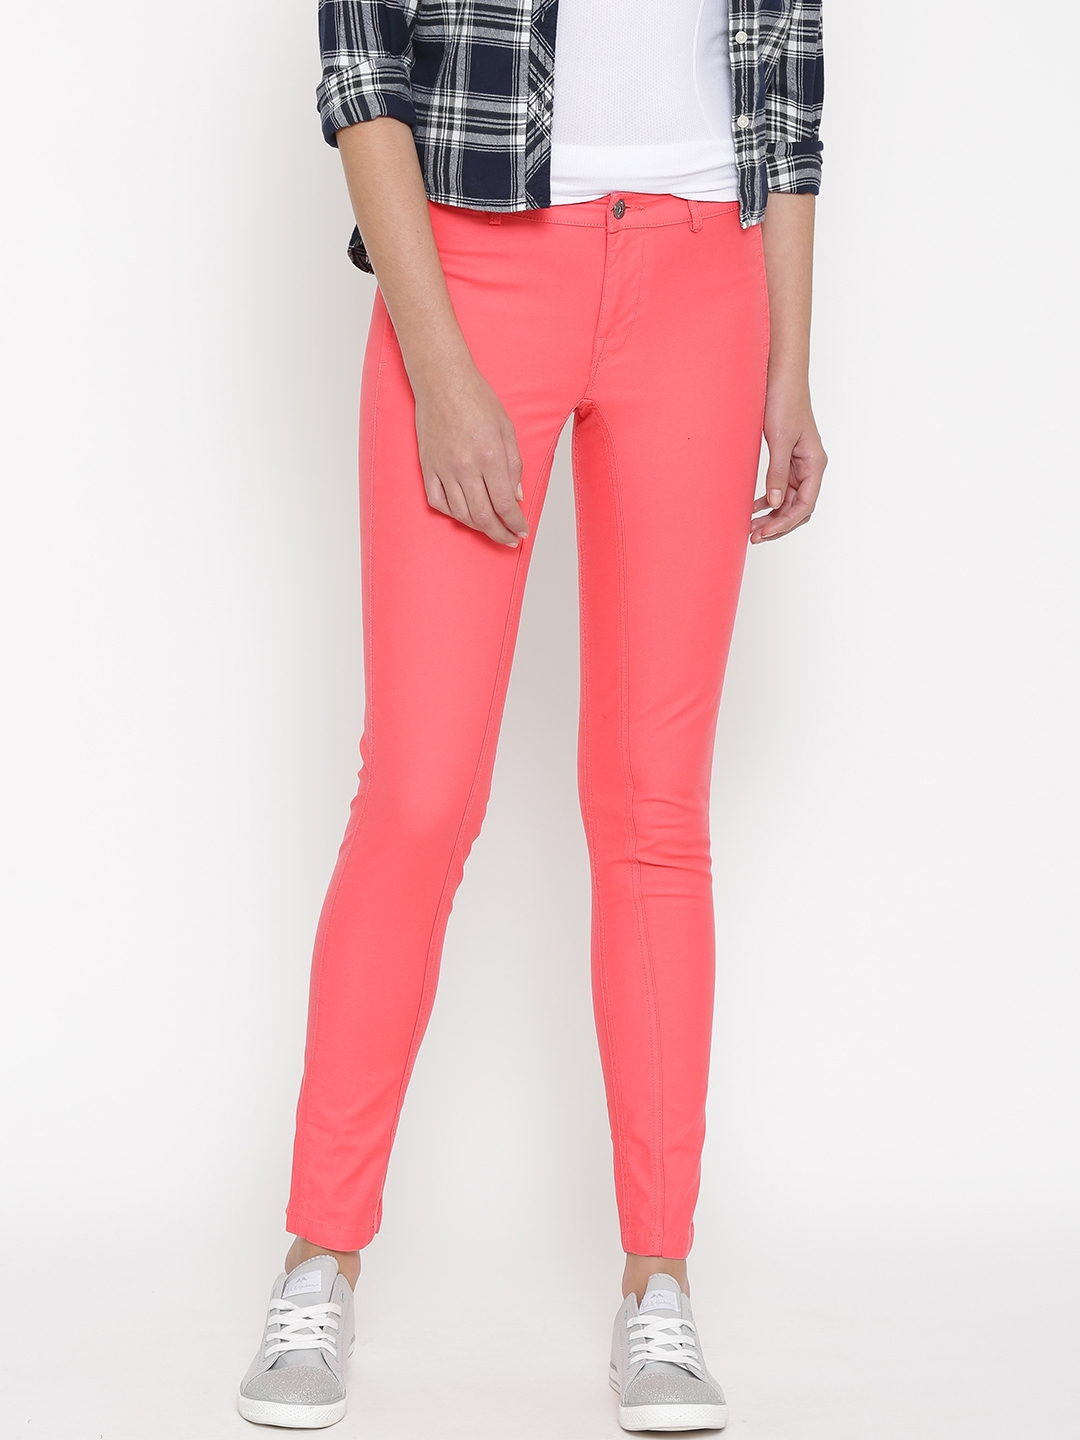 62b27973bee0 Buy Puma Women Coral Pink Garment Dyed Solid Trousers - Trousers for ...